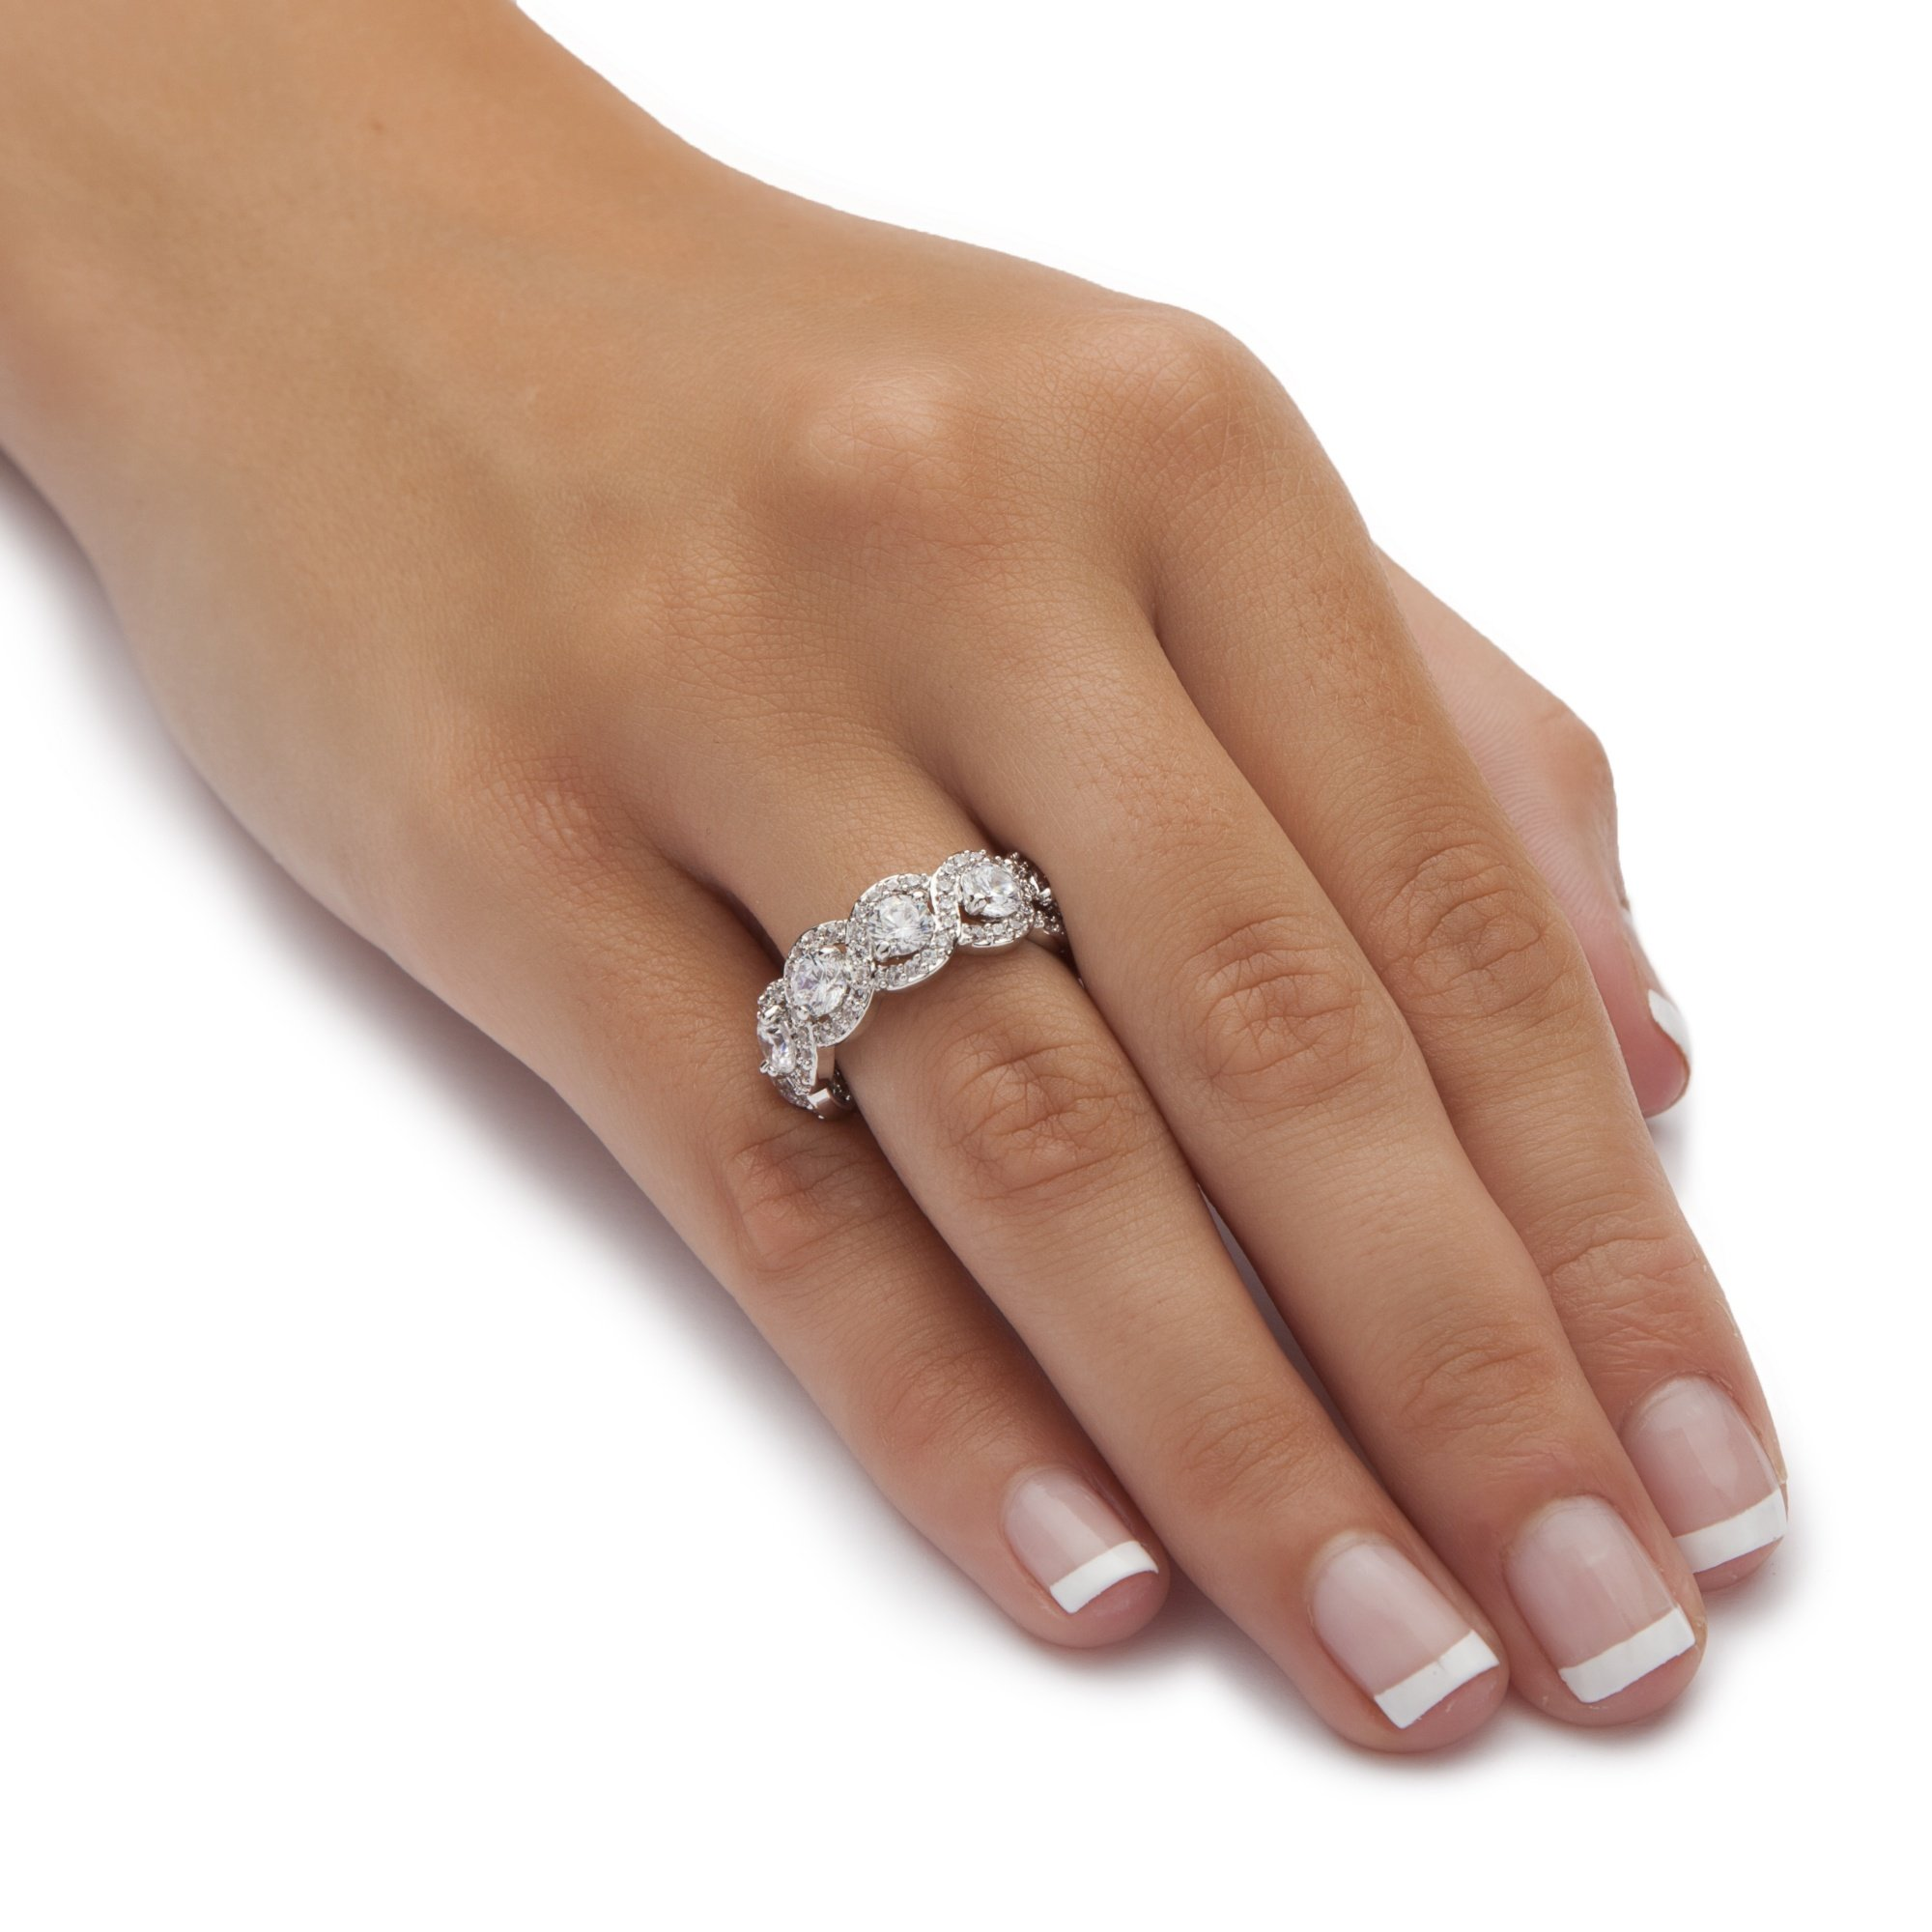 Round White Cubic Zirconia Platinum over .925 Sterling Silver Halo Crossover Eternity Ring by Seta Jewelry (Image #3)